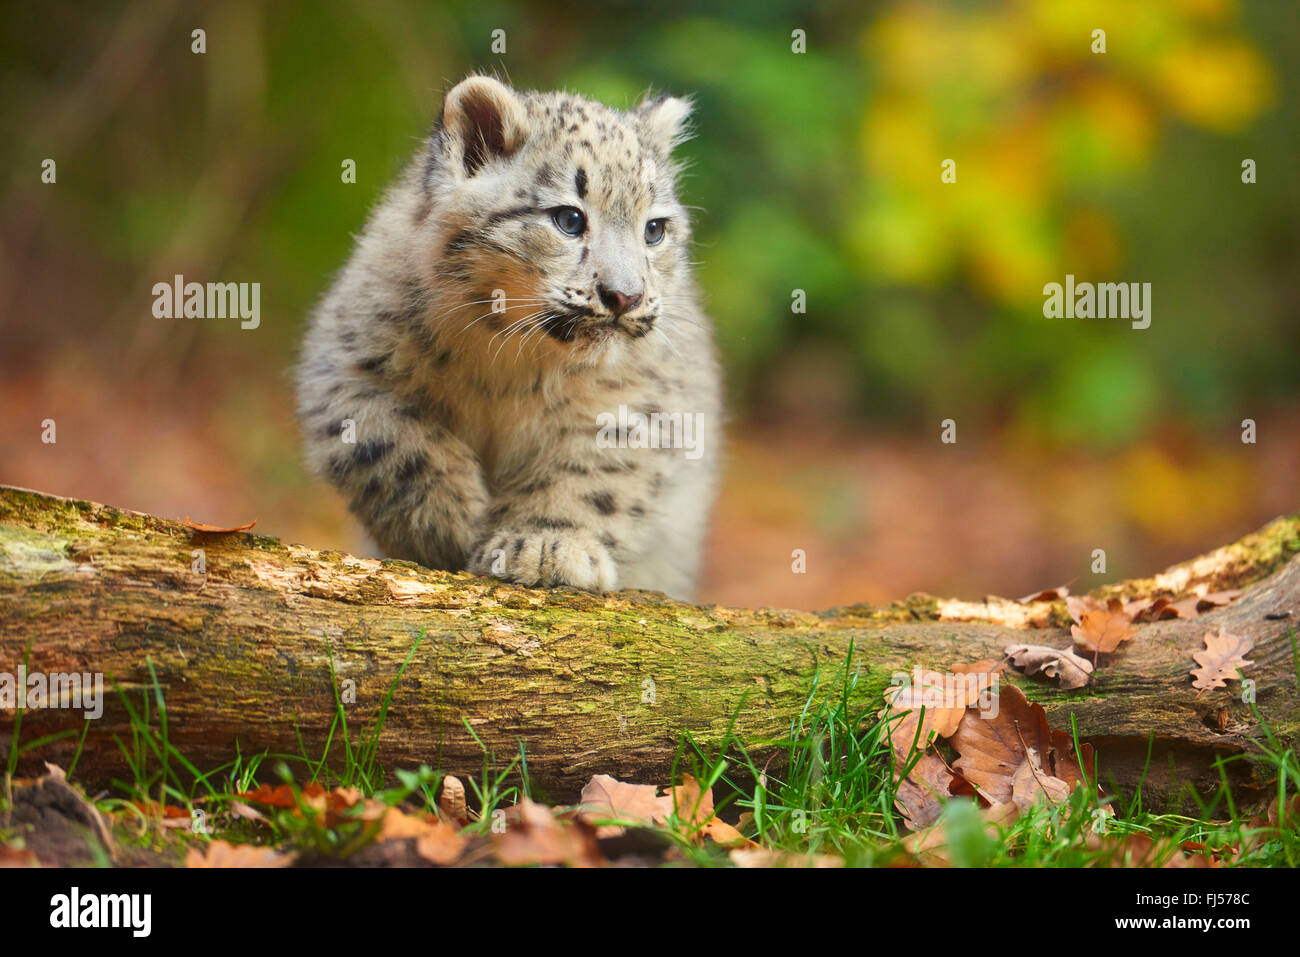 snow leopard (Uncia uncia, Panthera uncia), youngster climbing over a tree trunk - Stock Image